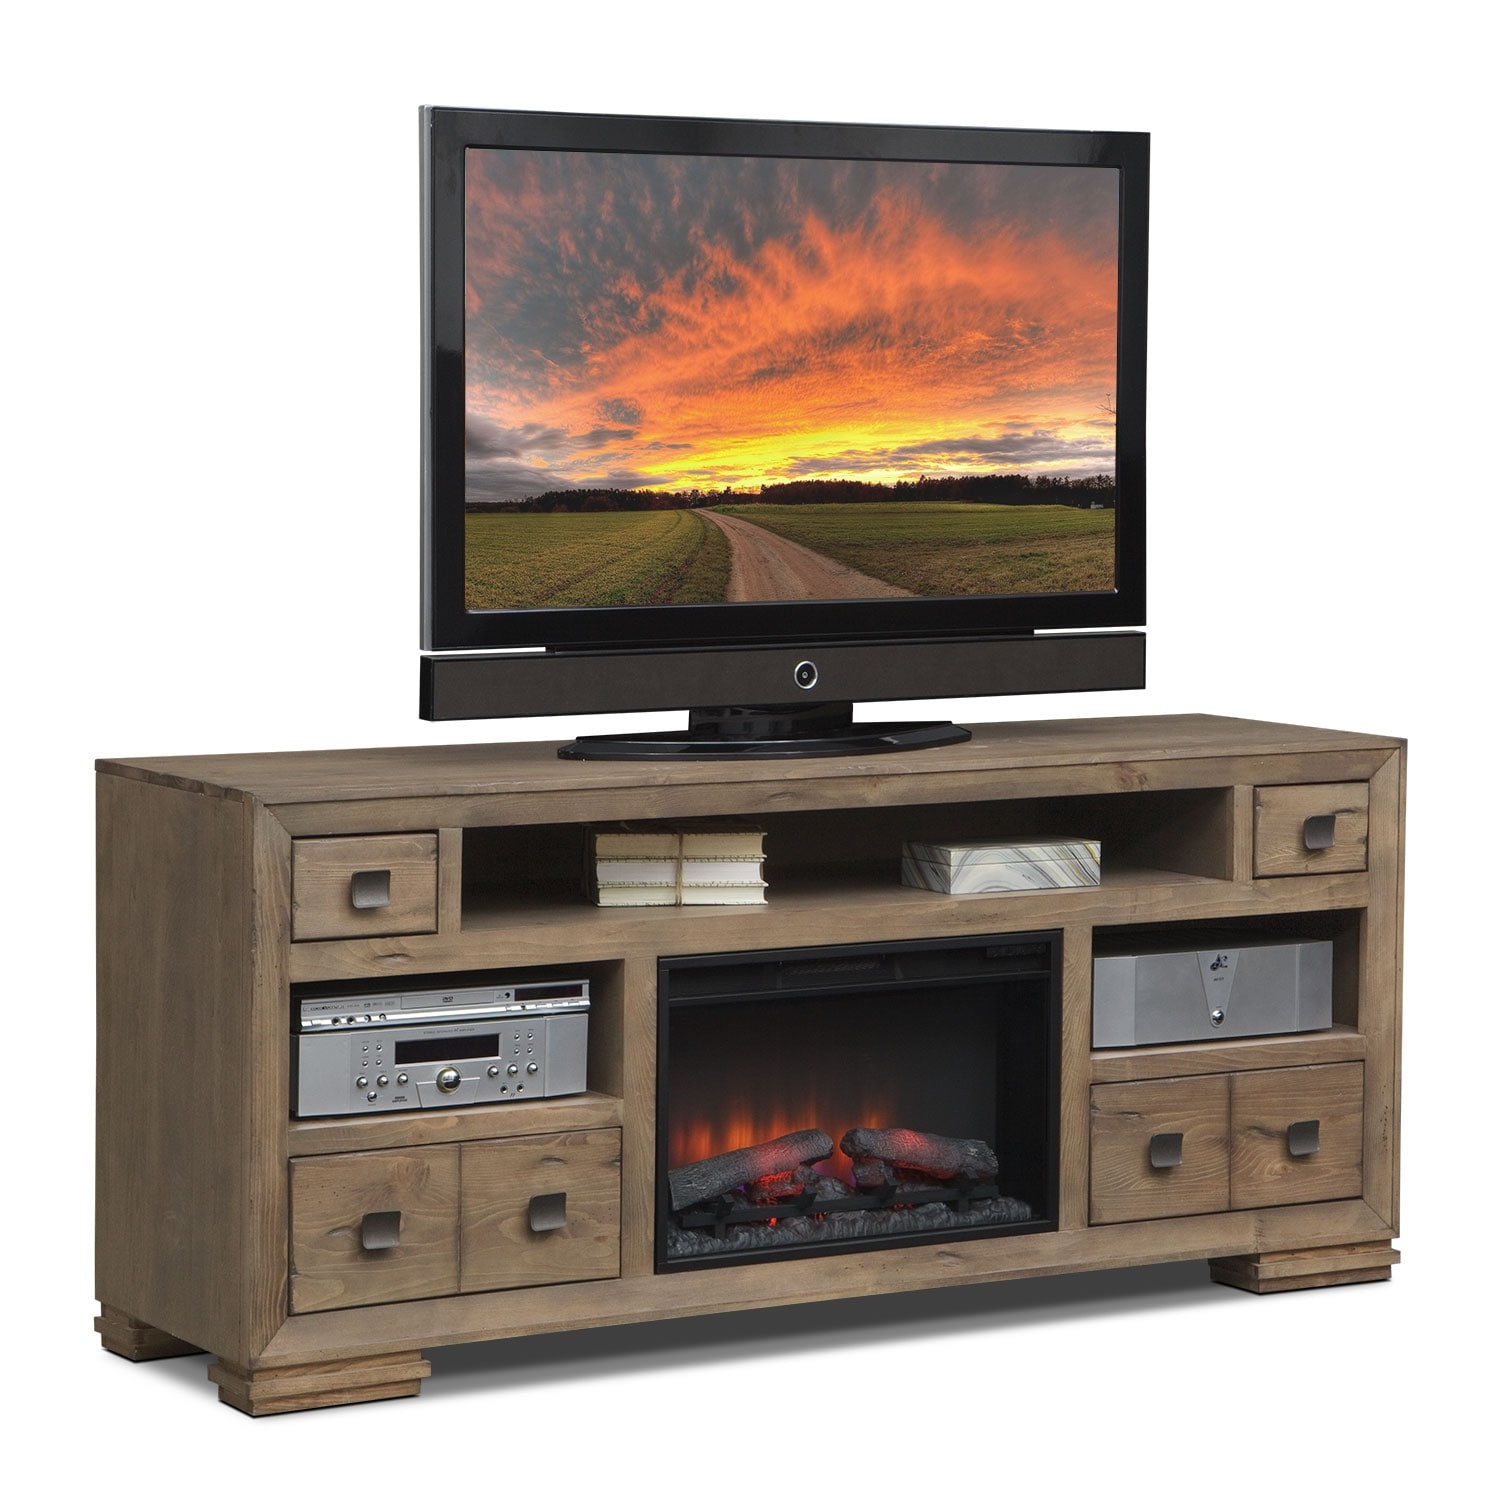 "Mesa 74"" Fireplace TV Stand with Traditional Insert - Distressed Pine"